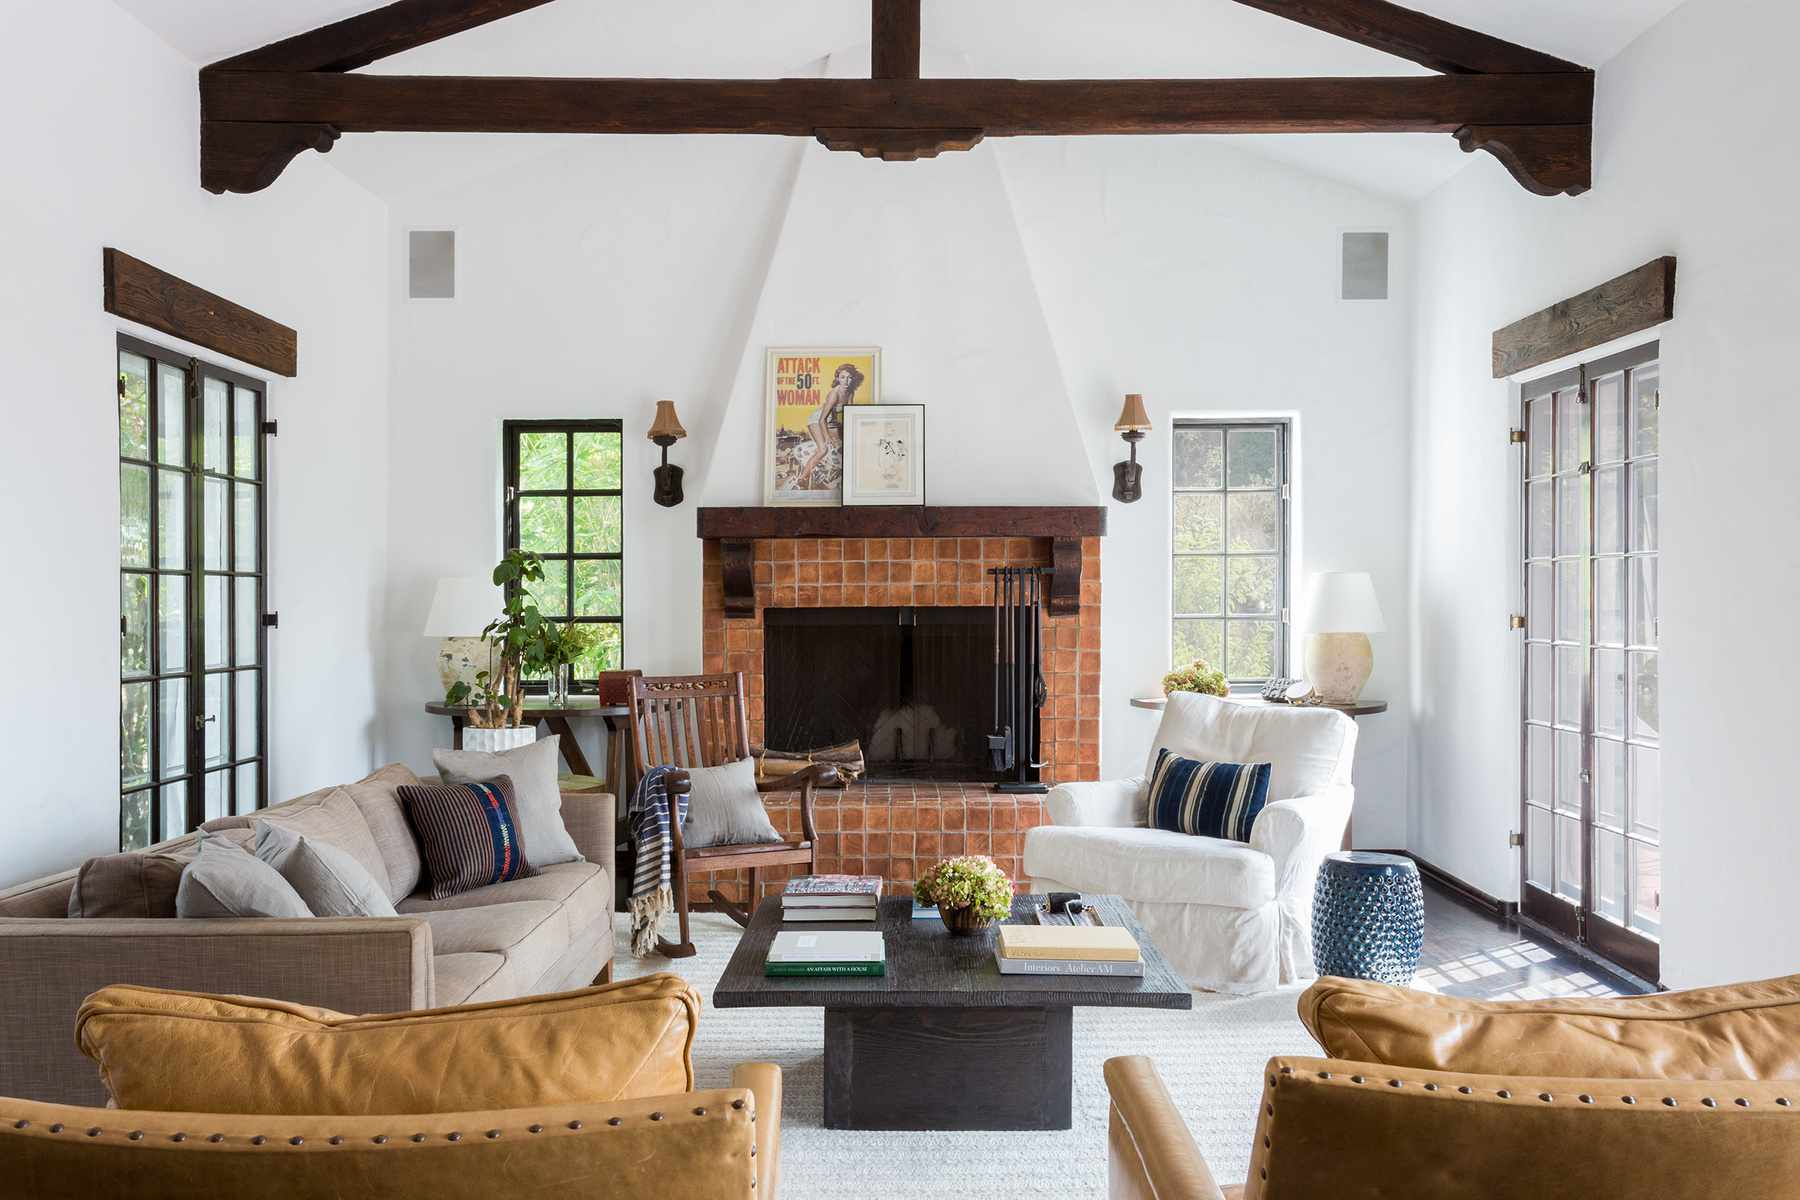 Rustic white living room with wooden beams.